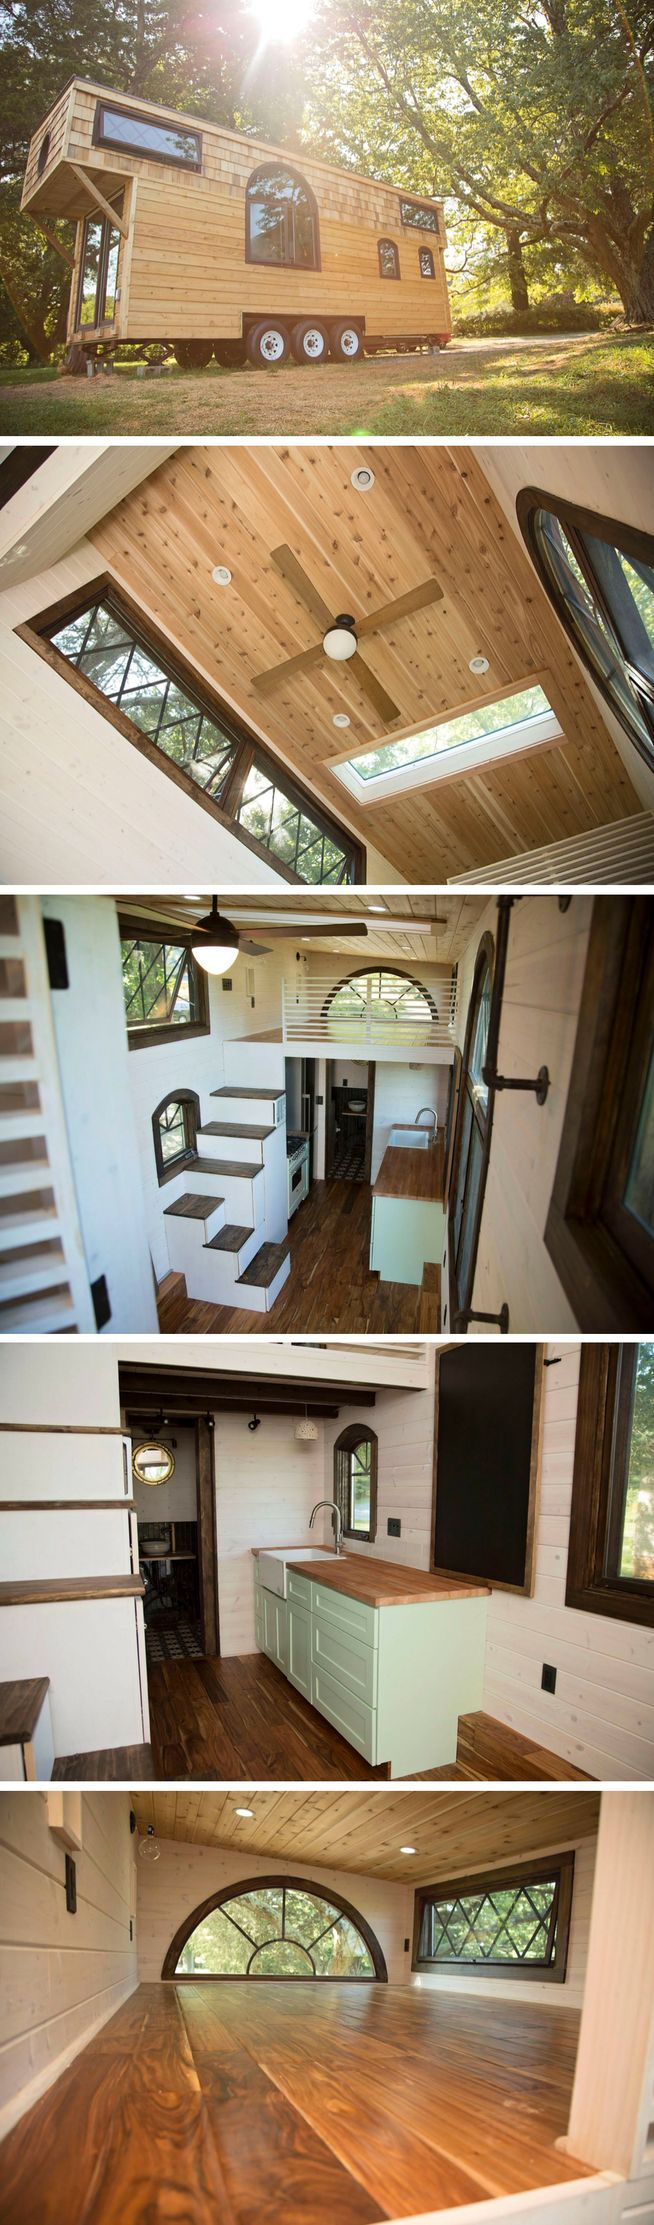 The Old World Vermont: a 300 sq ft tiny house on wheels from Perch and Nest